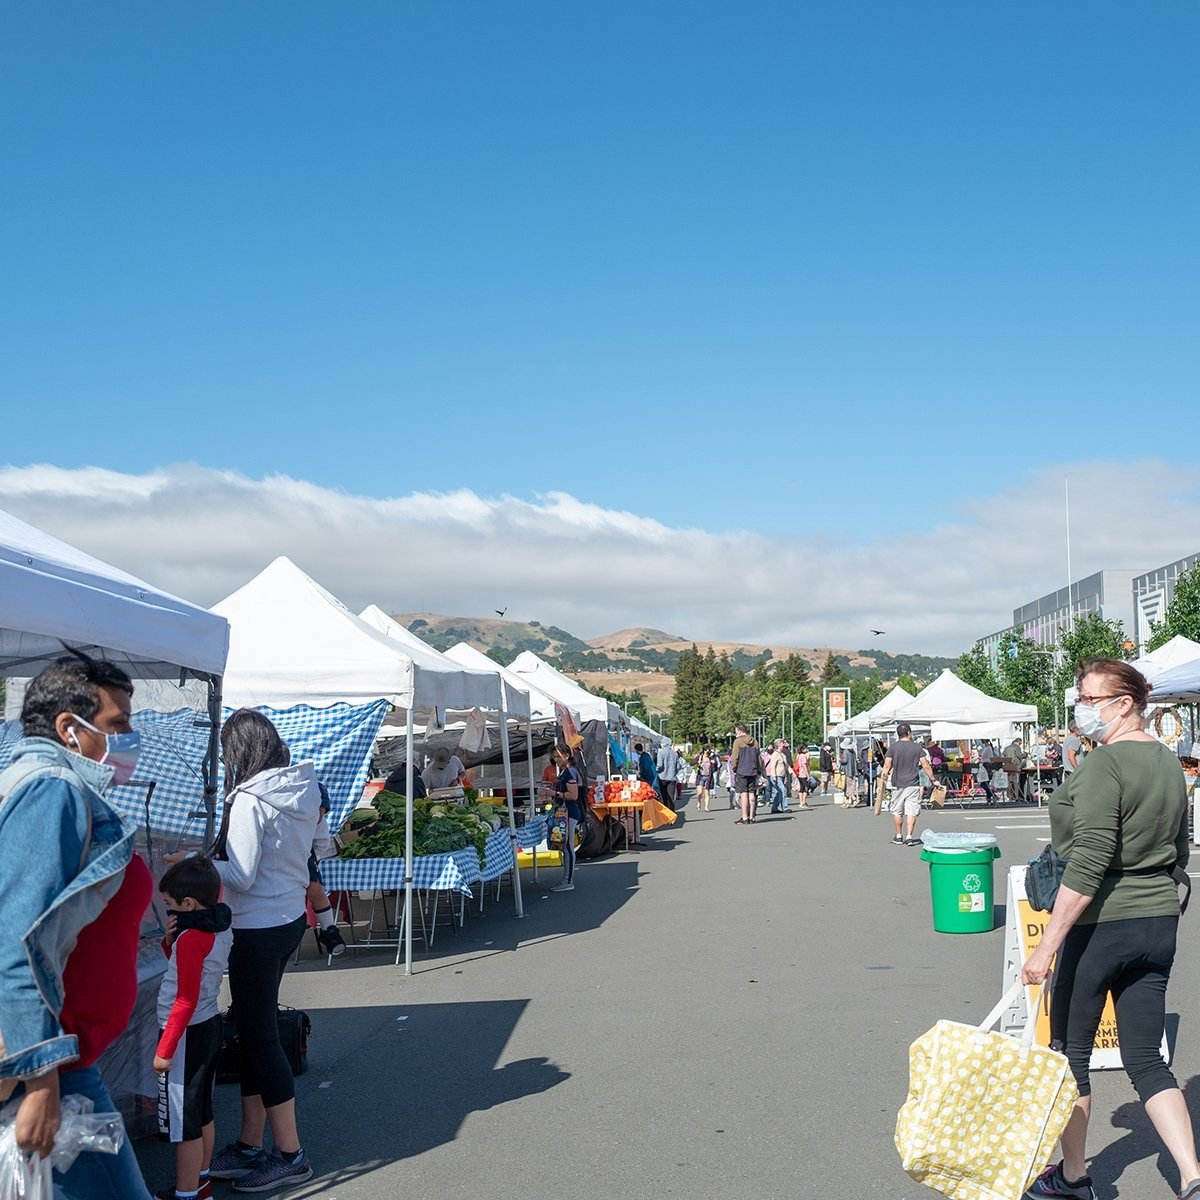 People browse through stalls at the San Ramon Farmer's Market, a California Certified Farmer's Market, San Ramon, California, June 6, 2020. (Photo by Smith Collection/Gado/Getty Images)